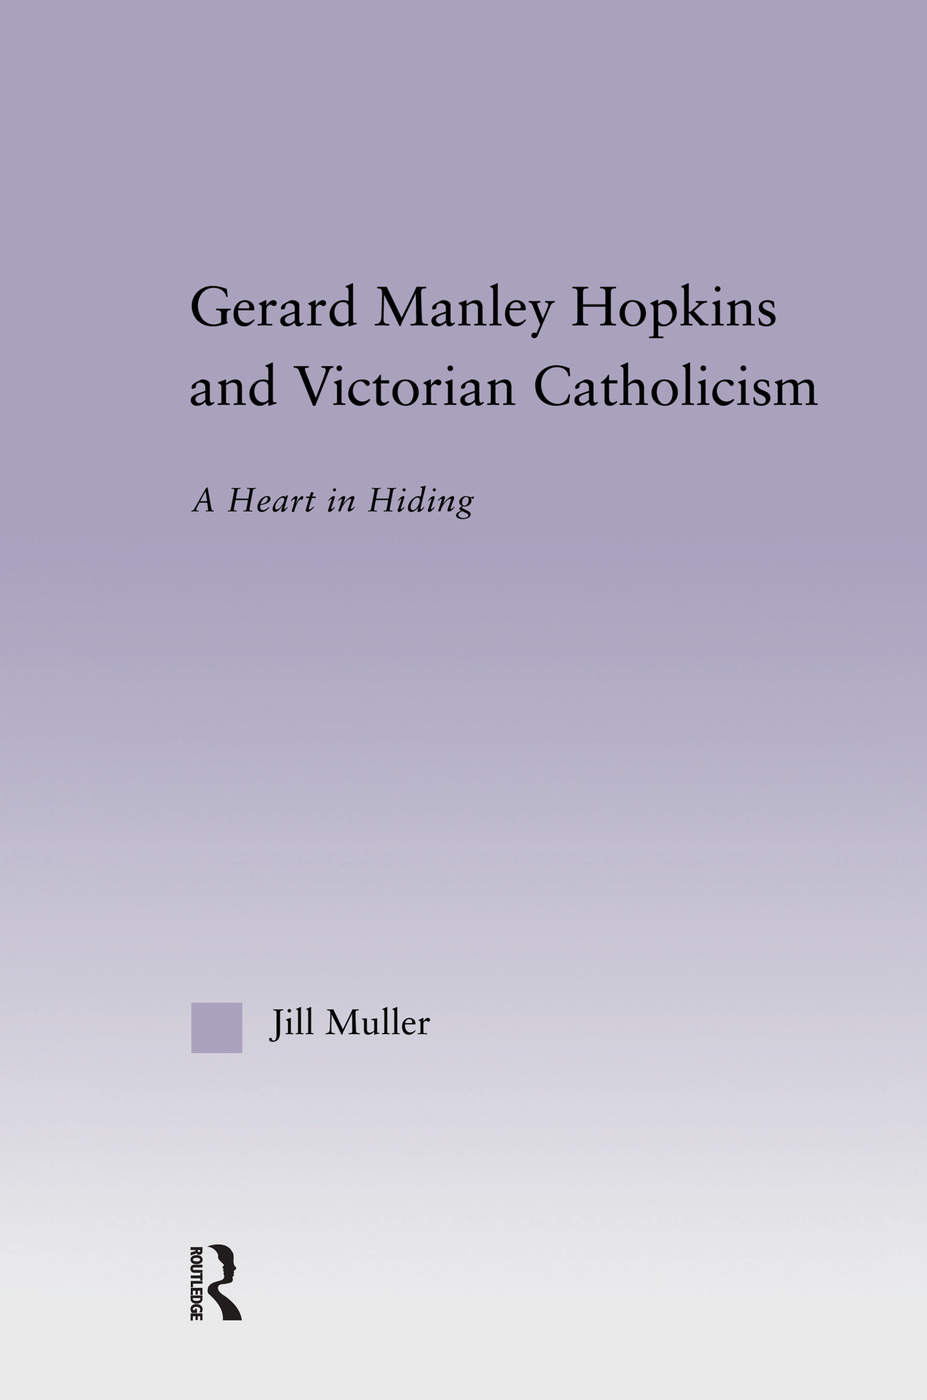 Gerard Manley Hopkins and Victorian Catholicism